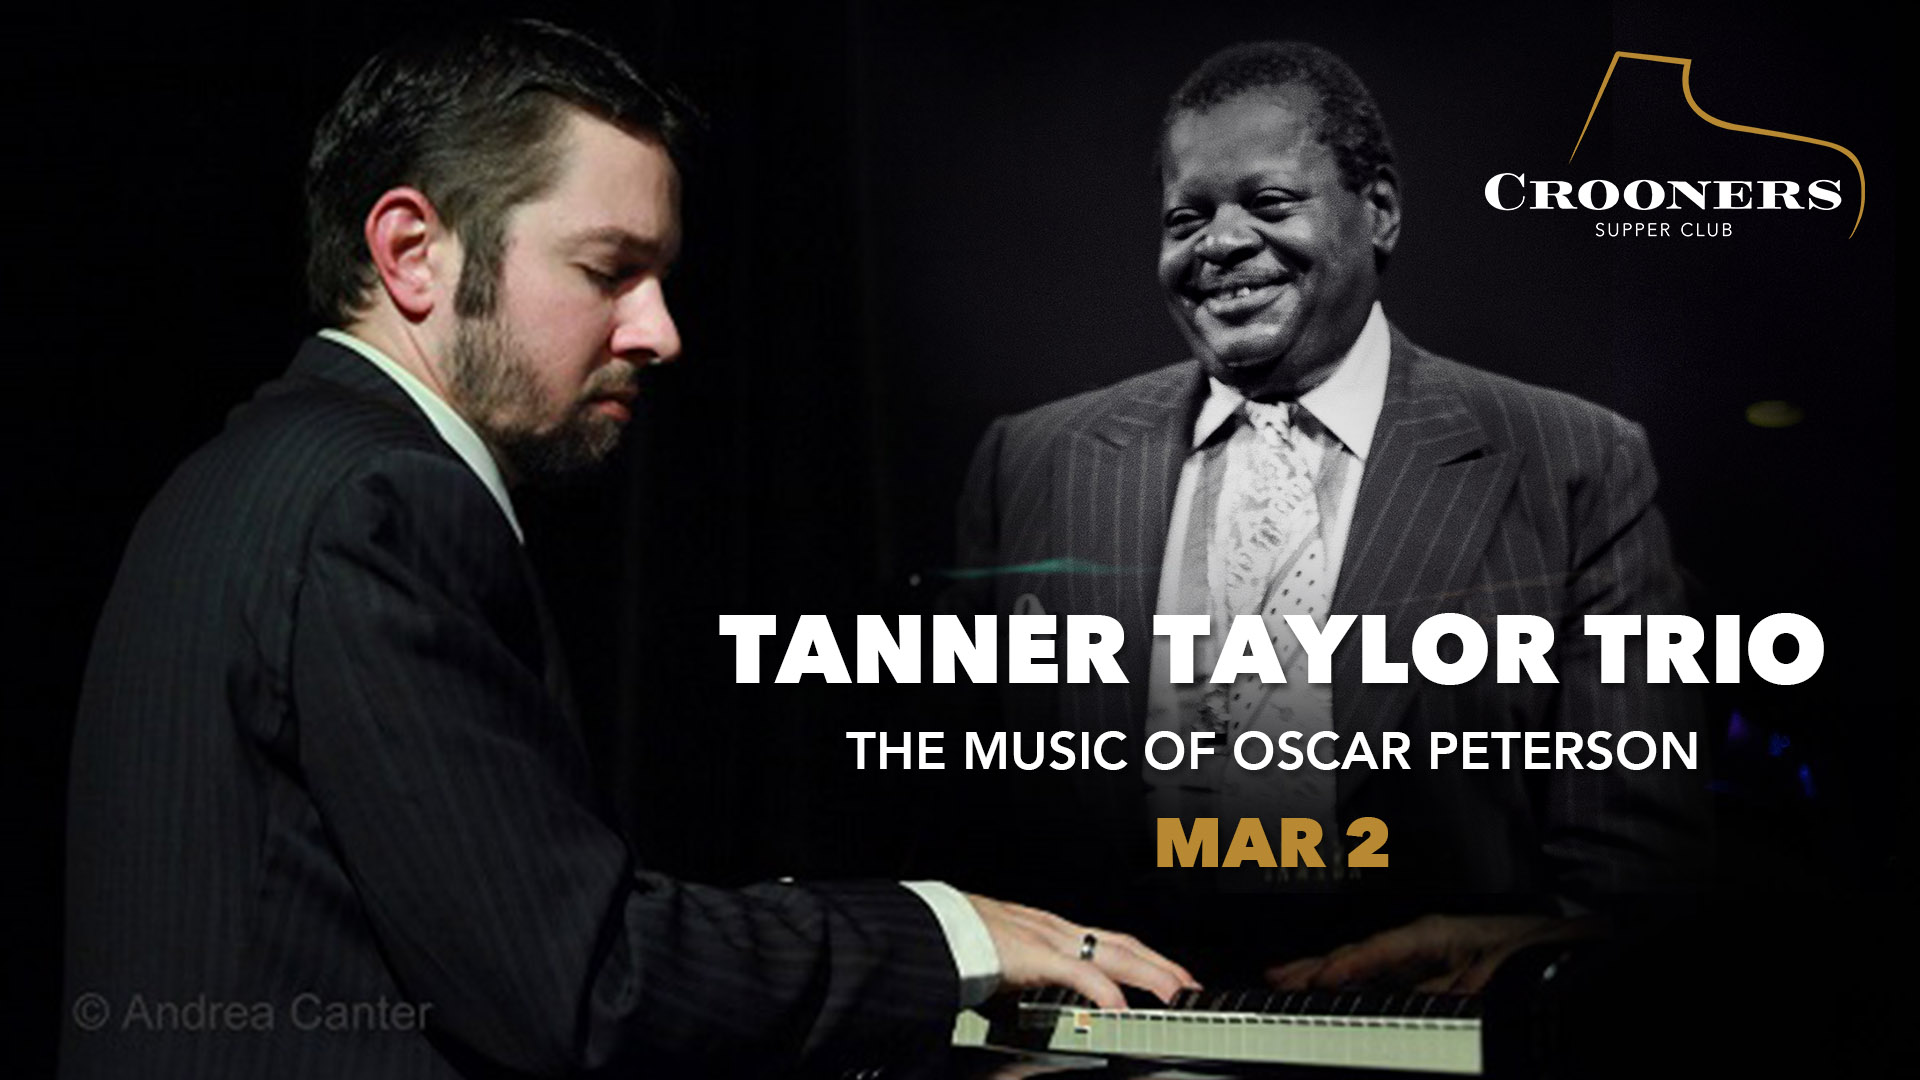 Tanner Taylor Trio plays Oscar Peterson - Twin Cities Virtuosic Piano Master